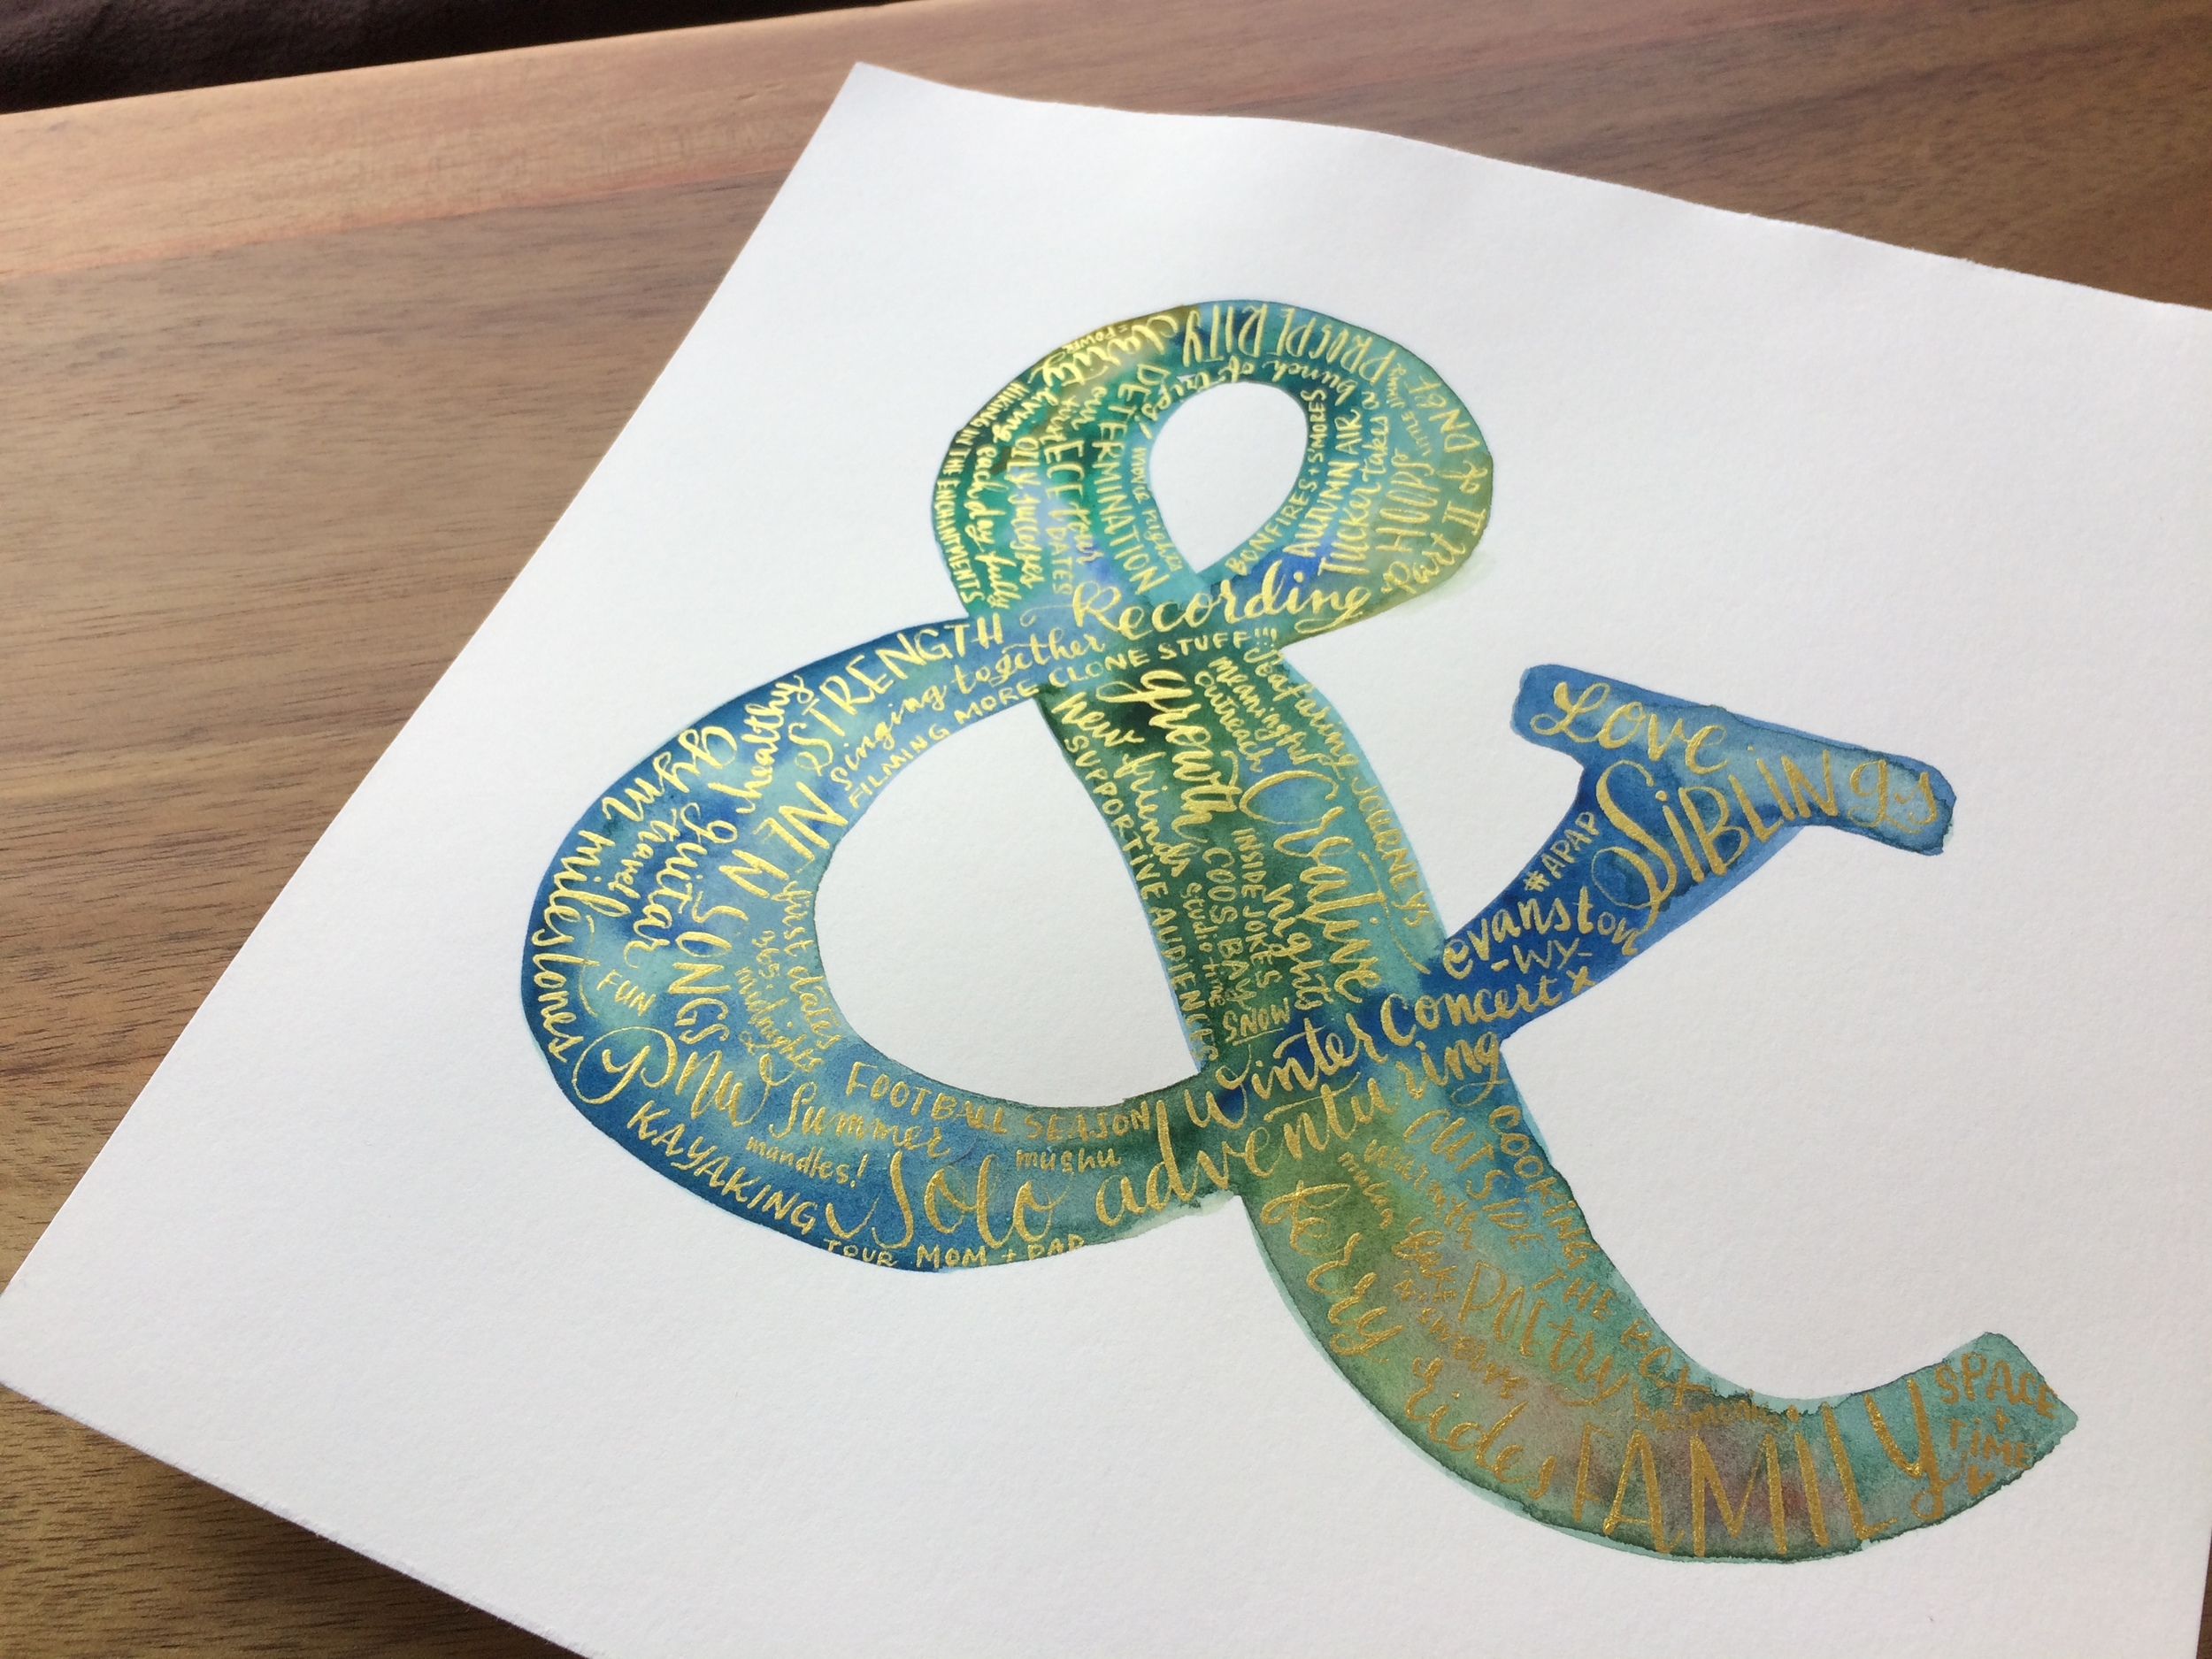 The Golden Letter Project